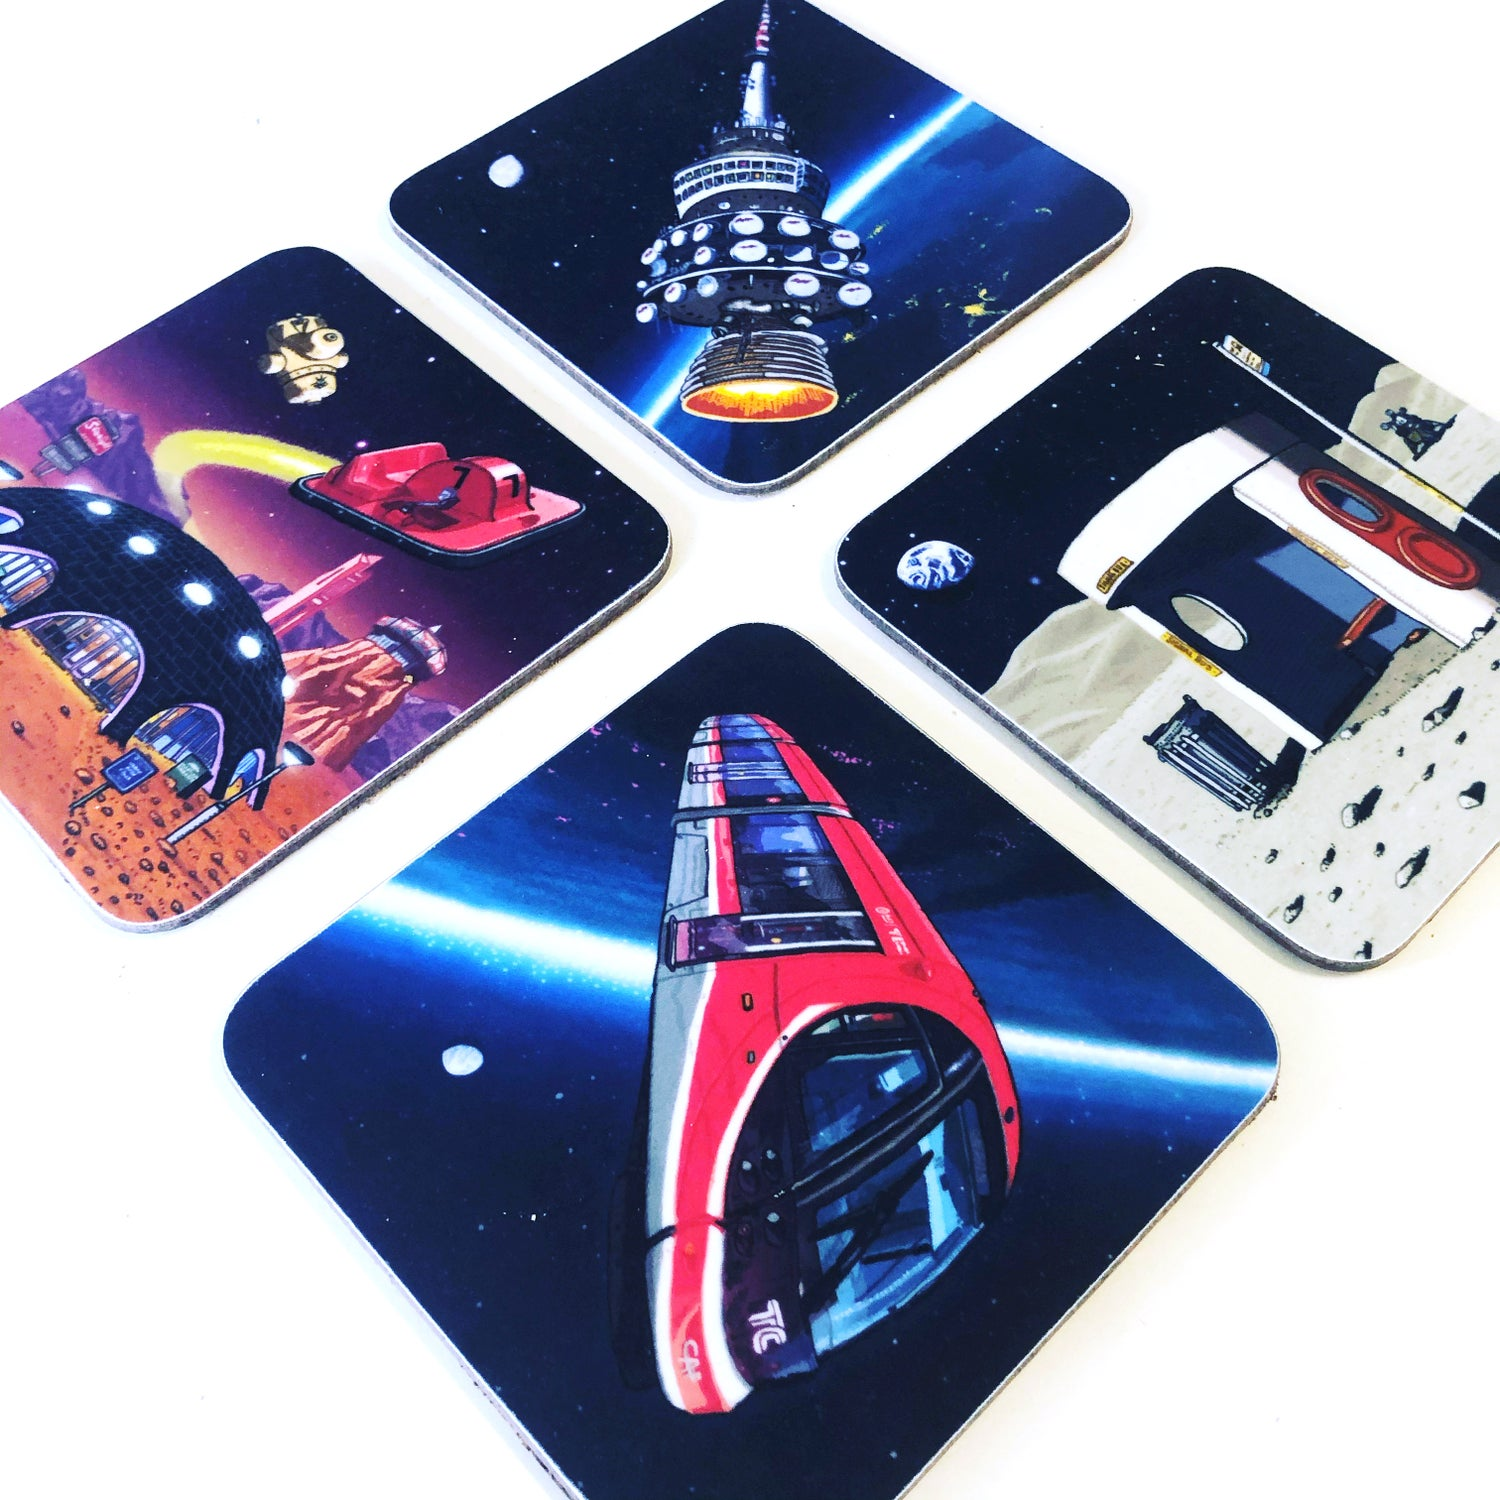 Image of Four Canberra Space Coasters